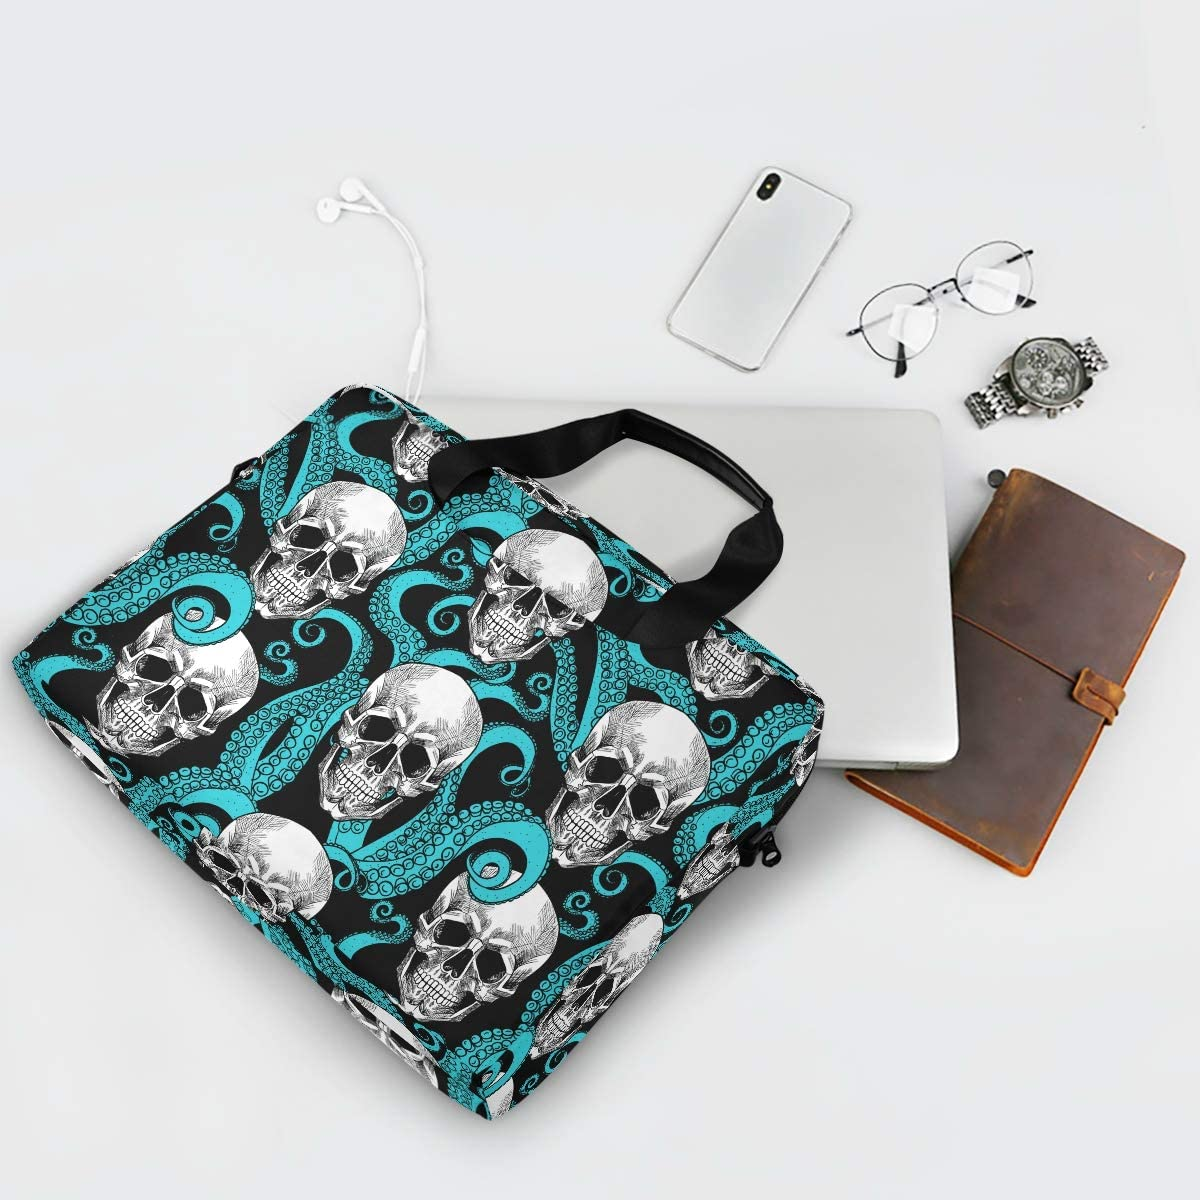 Kull and Tentacles of The Octopus 15.6 Inch Tote Bag Laptop Messenger Shoulder Bag Carrying Briefcase Laptop Bag Briefcase Shoulder Bag Office Great to School